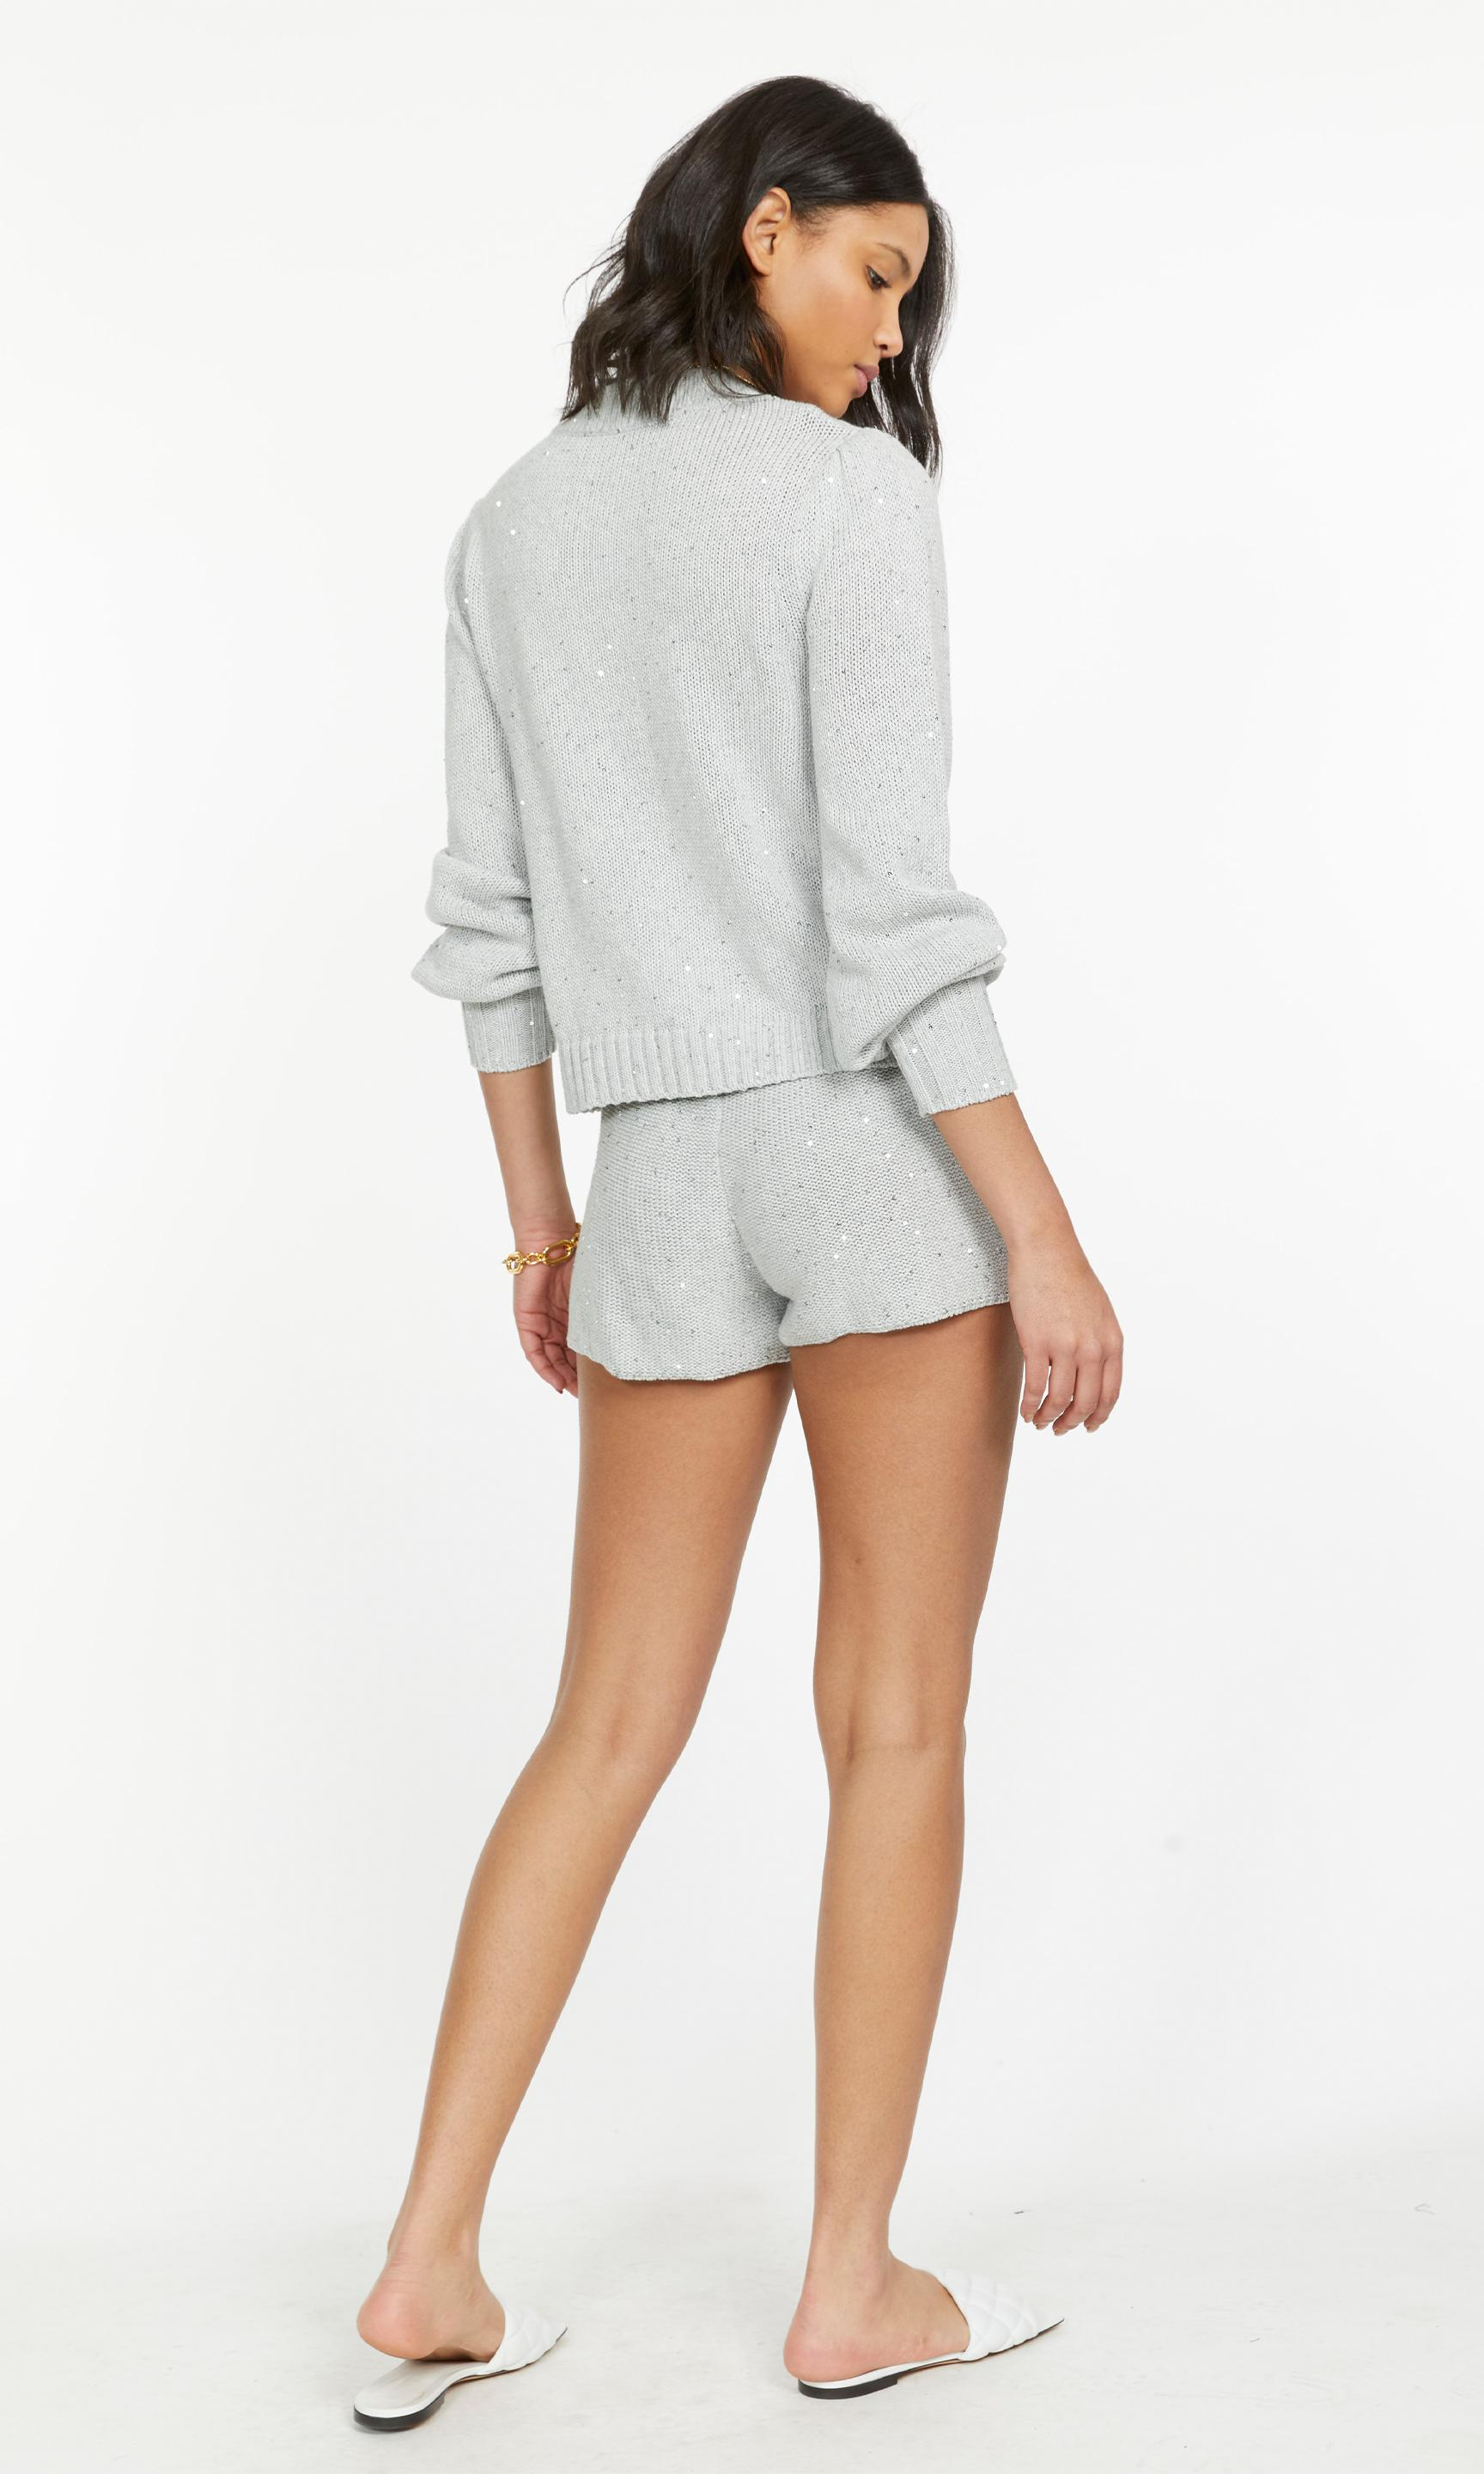 Lowell Sequin Knitted Cardigan 4